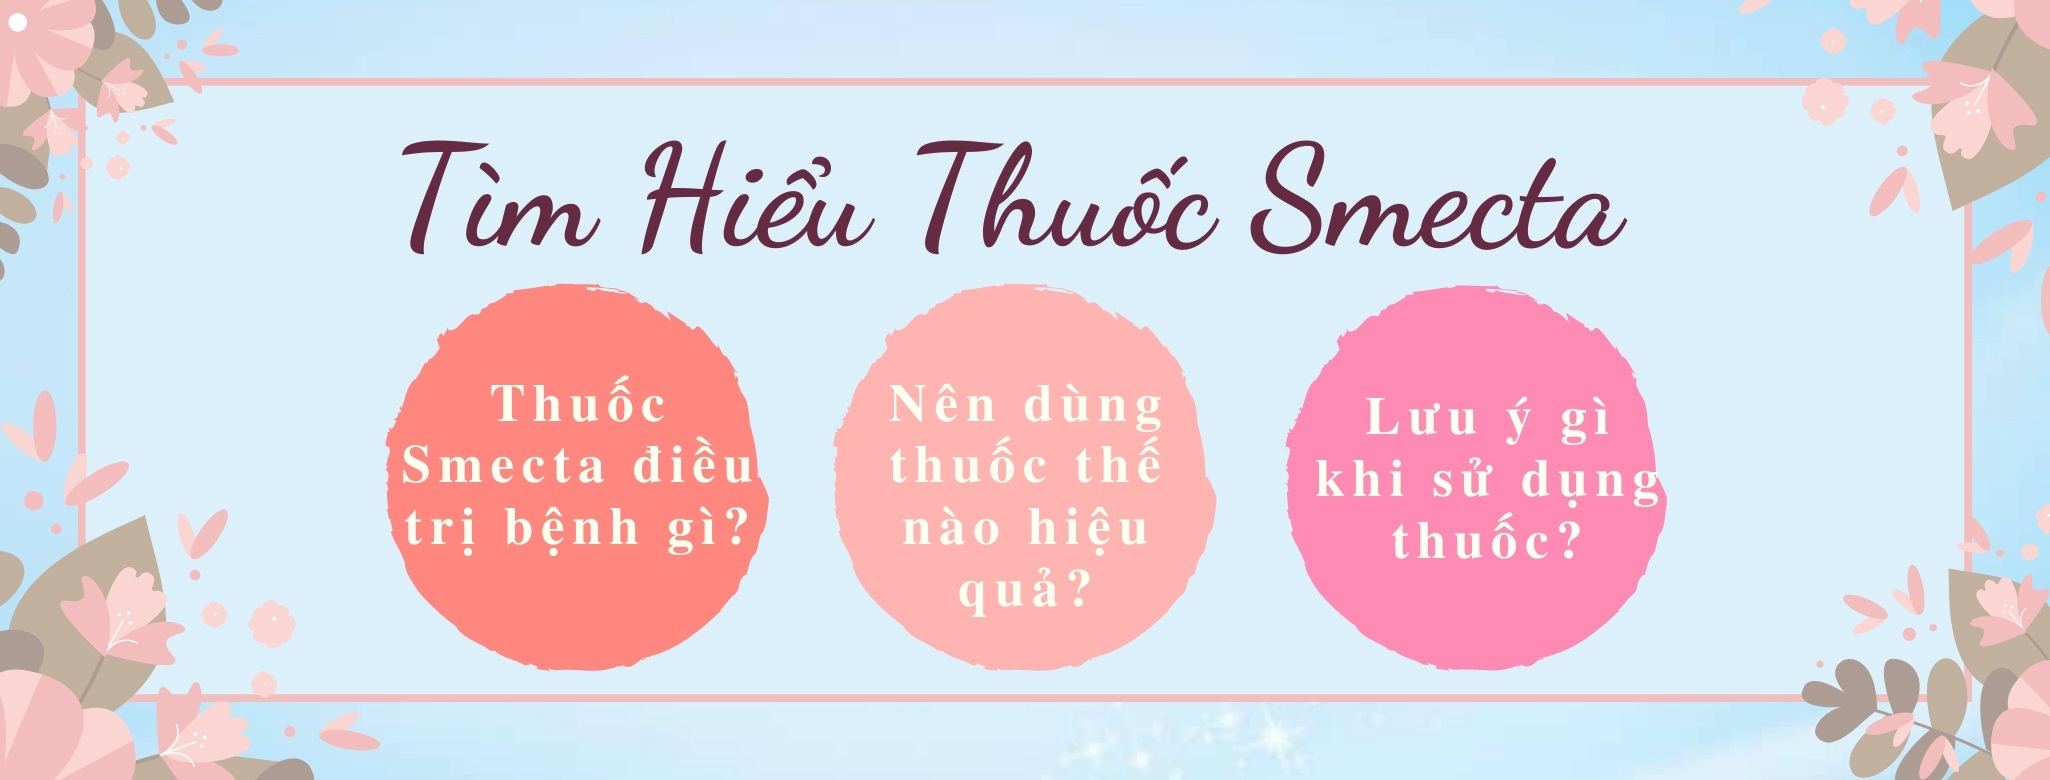 Thuốc Smecta-Thuốc Đặc Trị 247 (@smecta_thuocdactri247) Cover Image